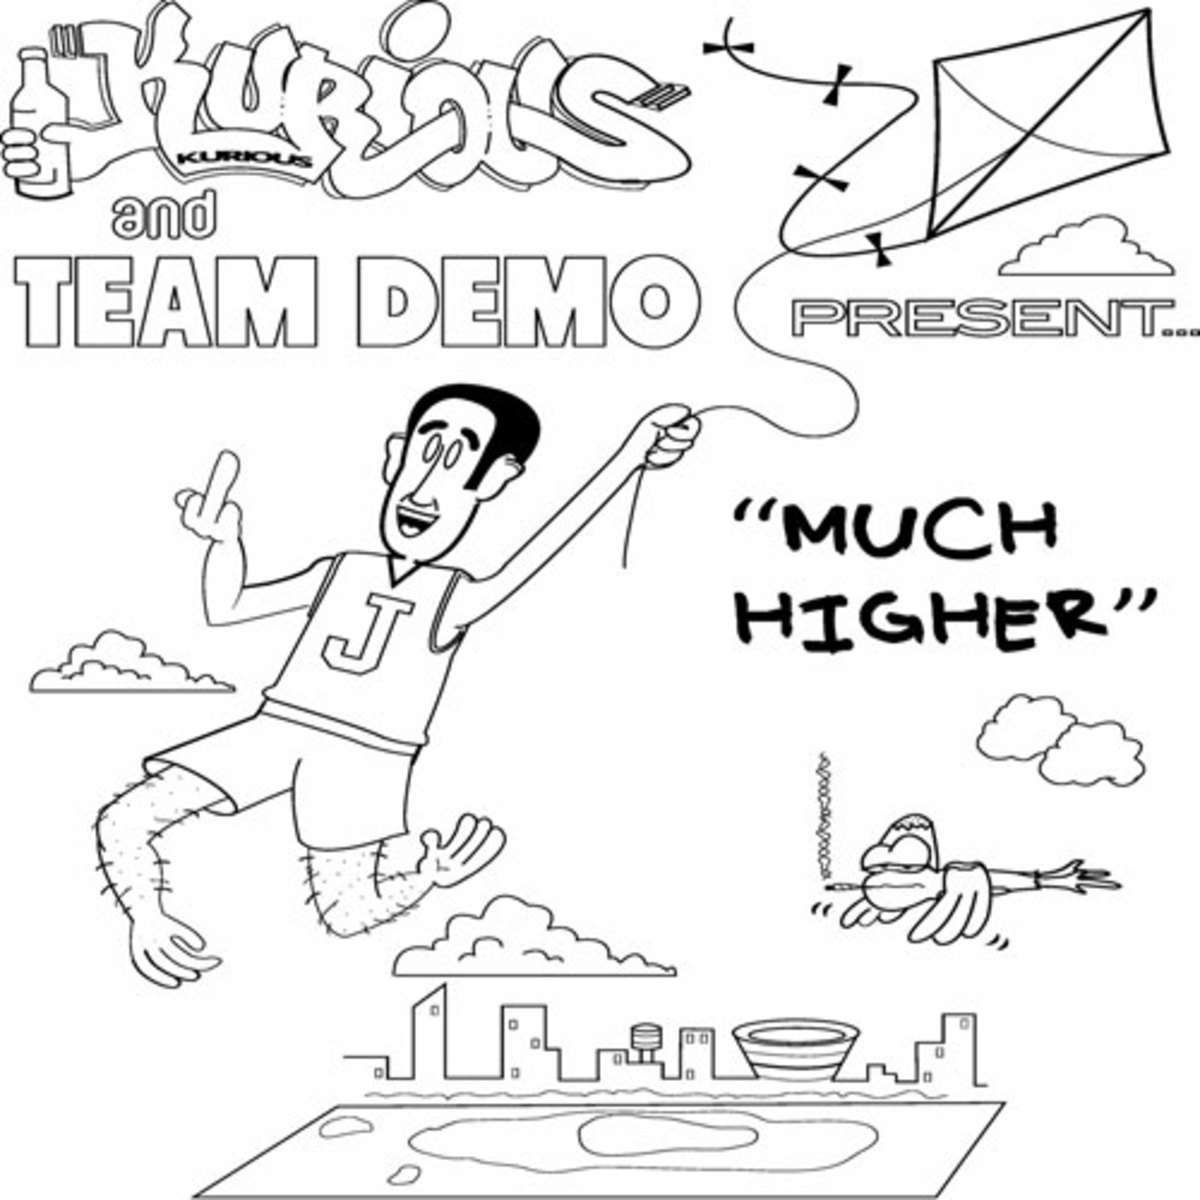 kurious-muchhigher.jpg